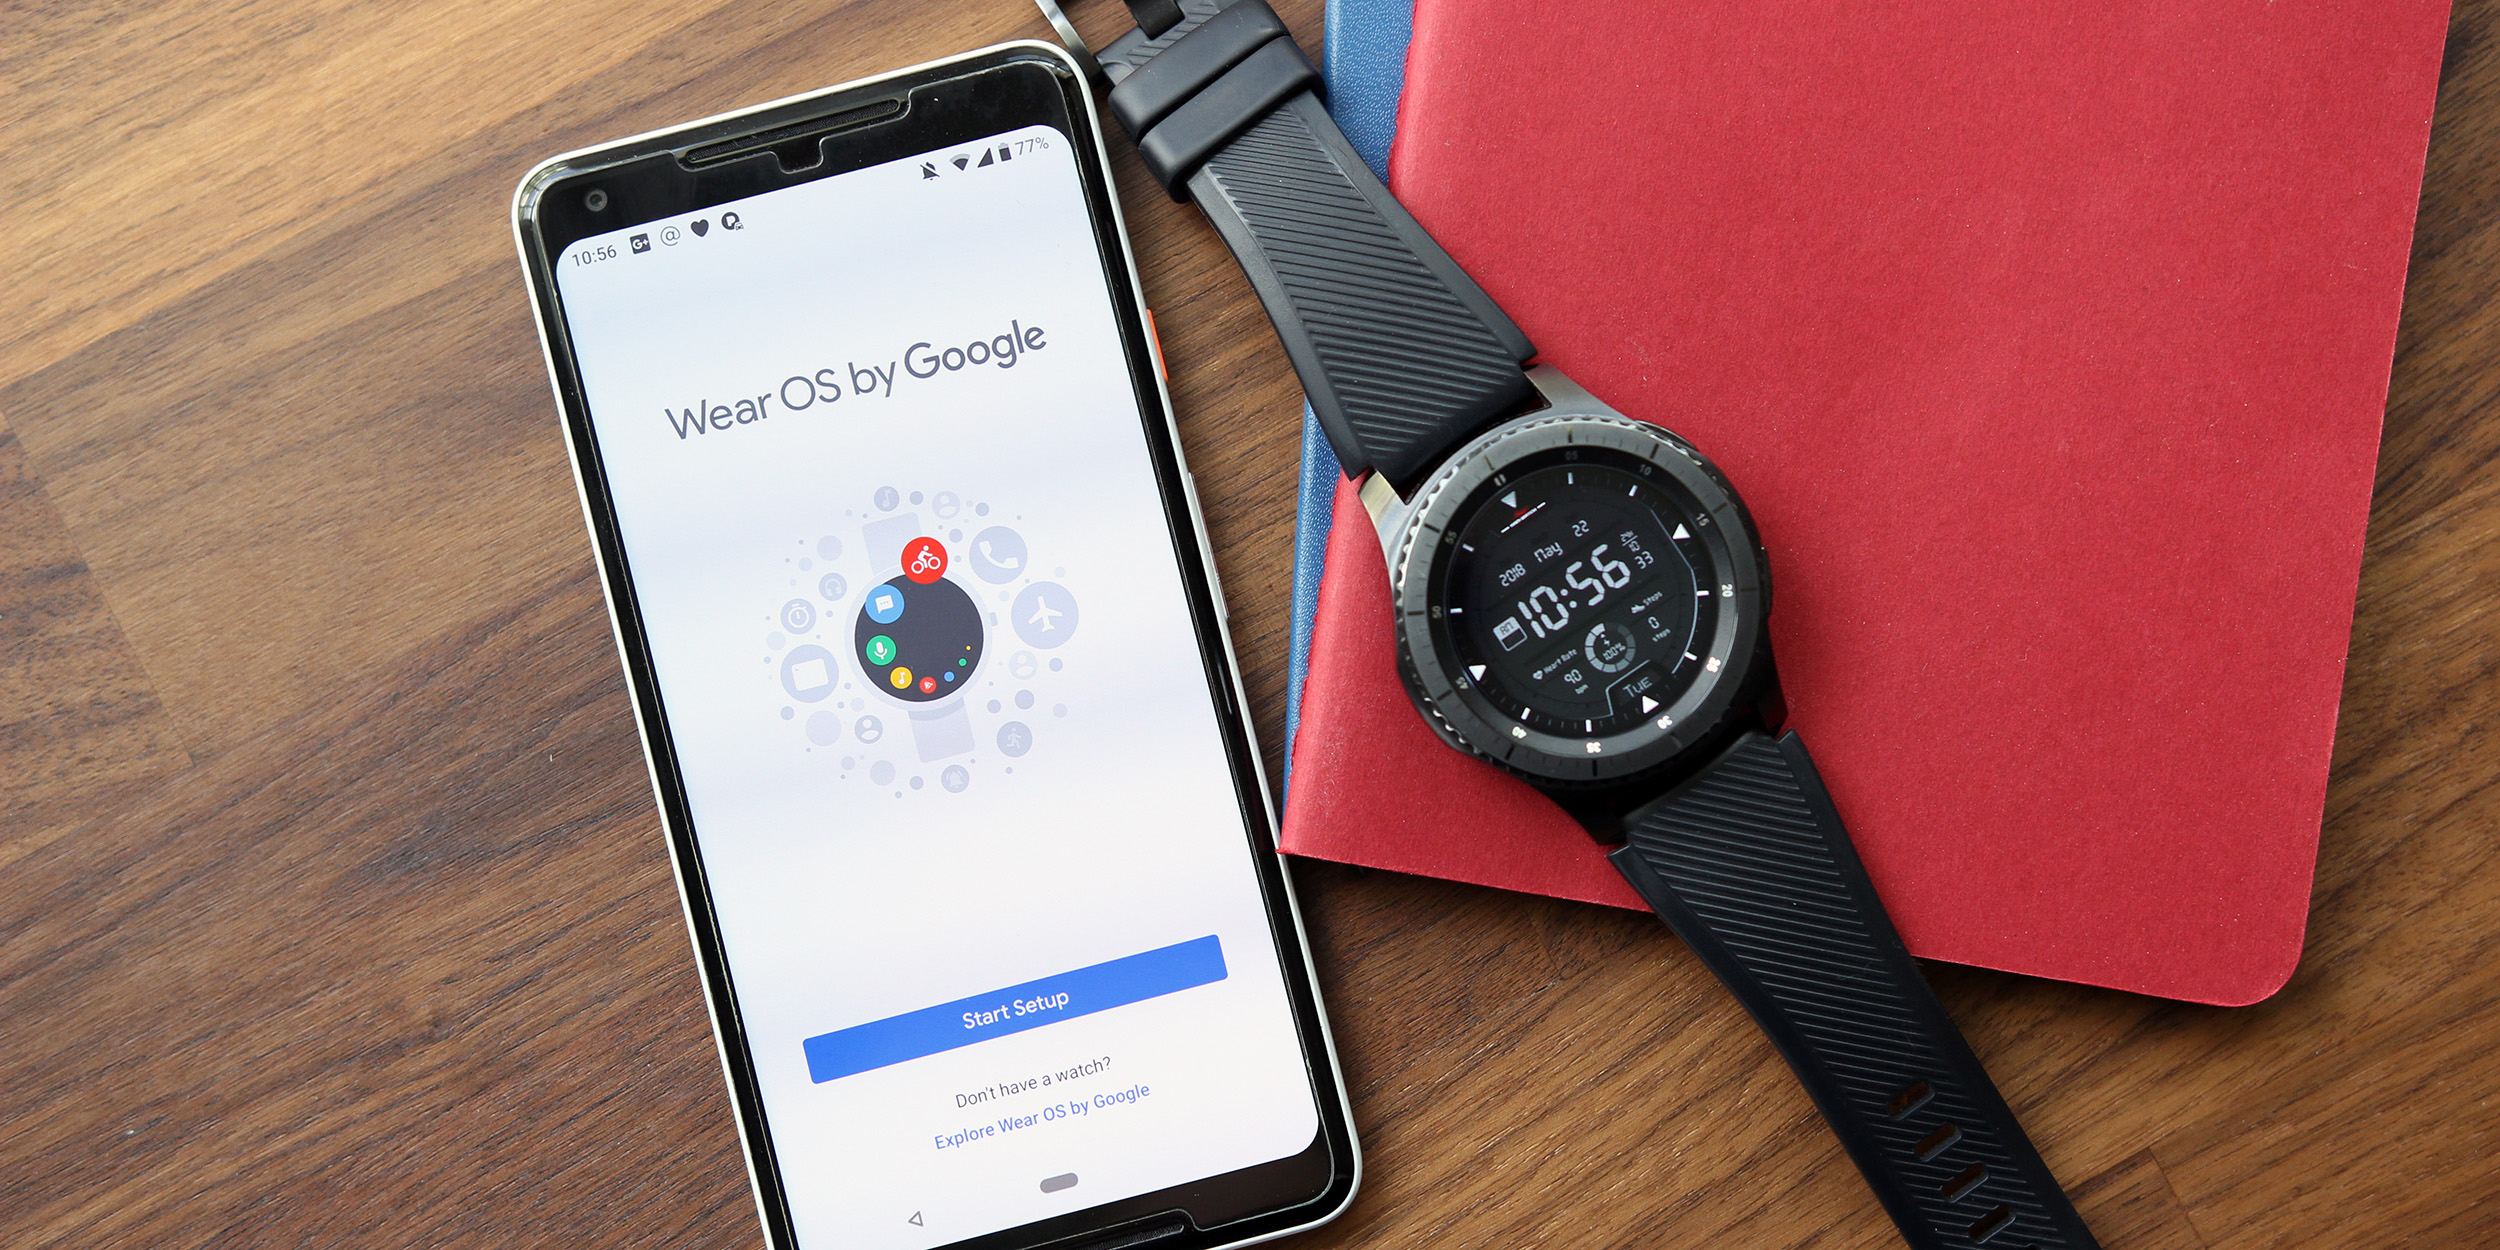 Dc5m United States It In English Created At 2018 07 11 0603 The 360 Has A 1gb39s Bidirectional Bus With 500mb S Read And Samsung Delivered Some Of Best Smartwatches Wearables For Android To Date Its Gear Lineup Over Years Company Really Made That